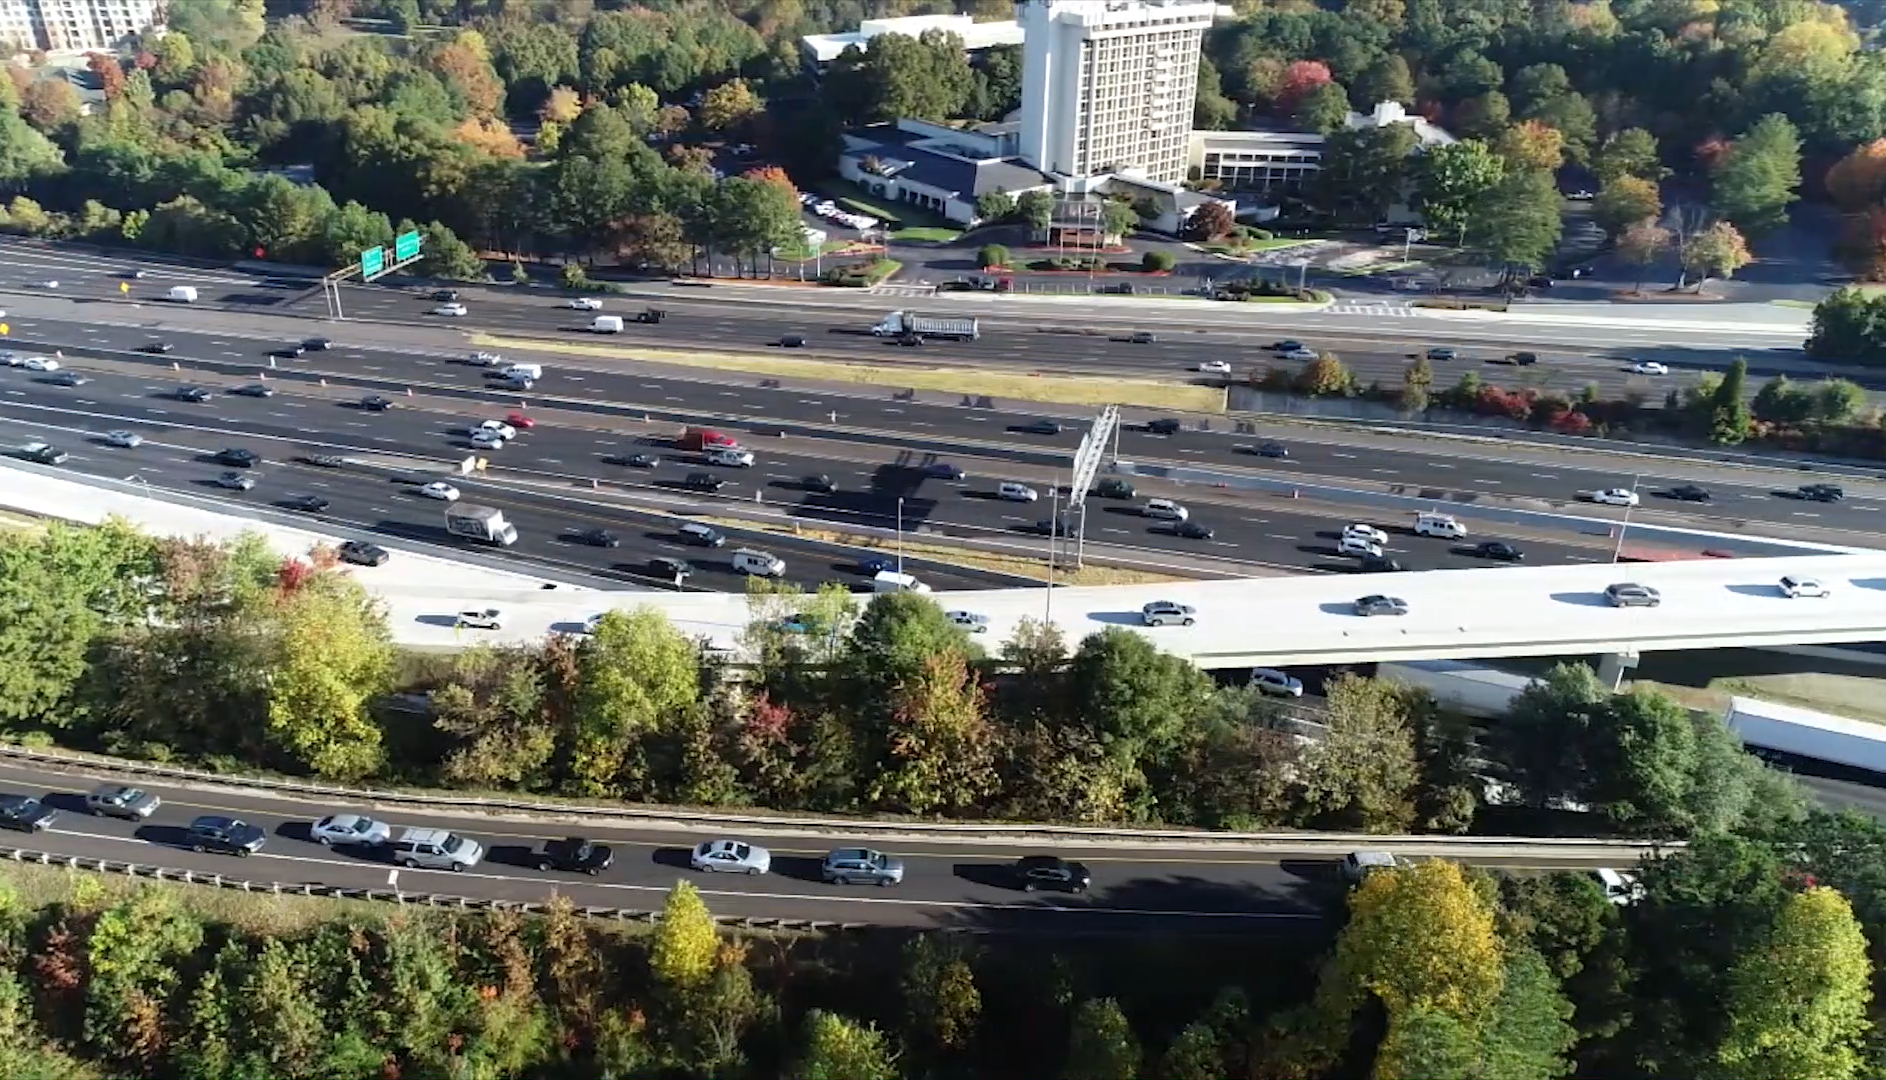 The new express lanes, in white, hop over the general access lanes snuggled between two large clumps of green trees.